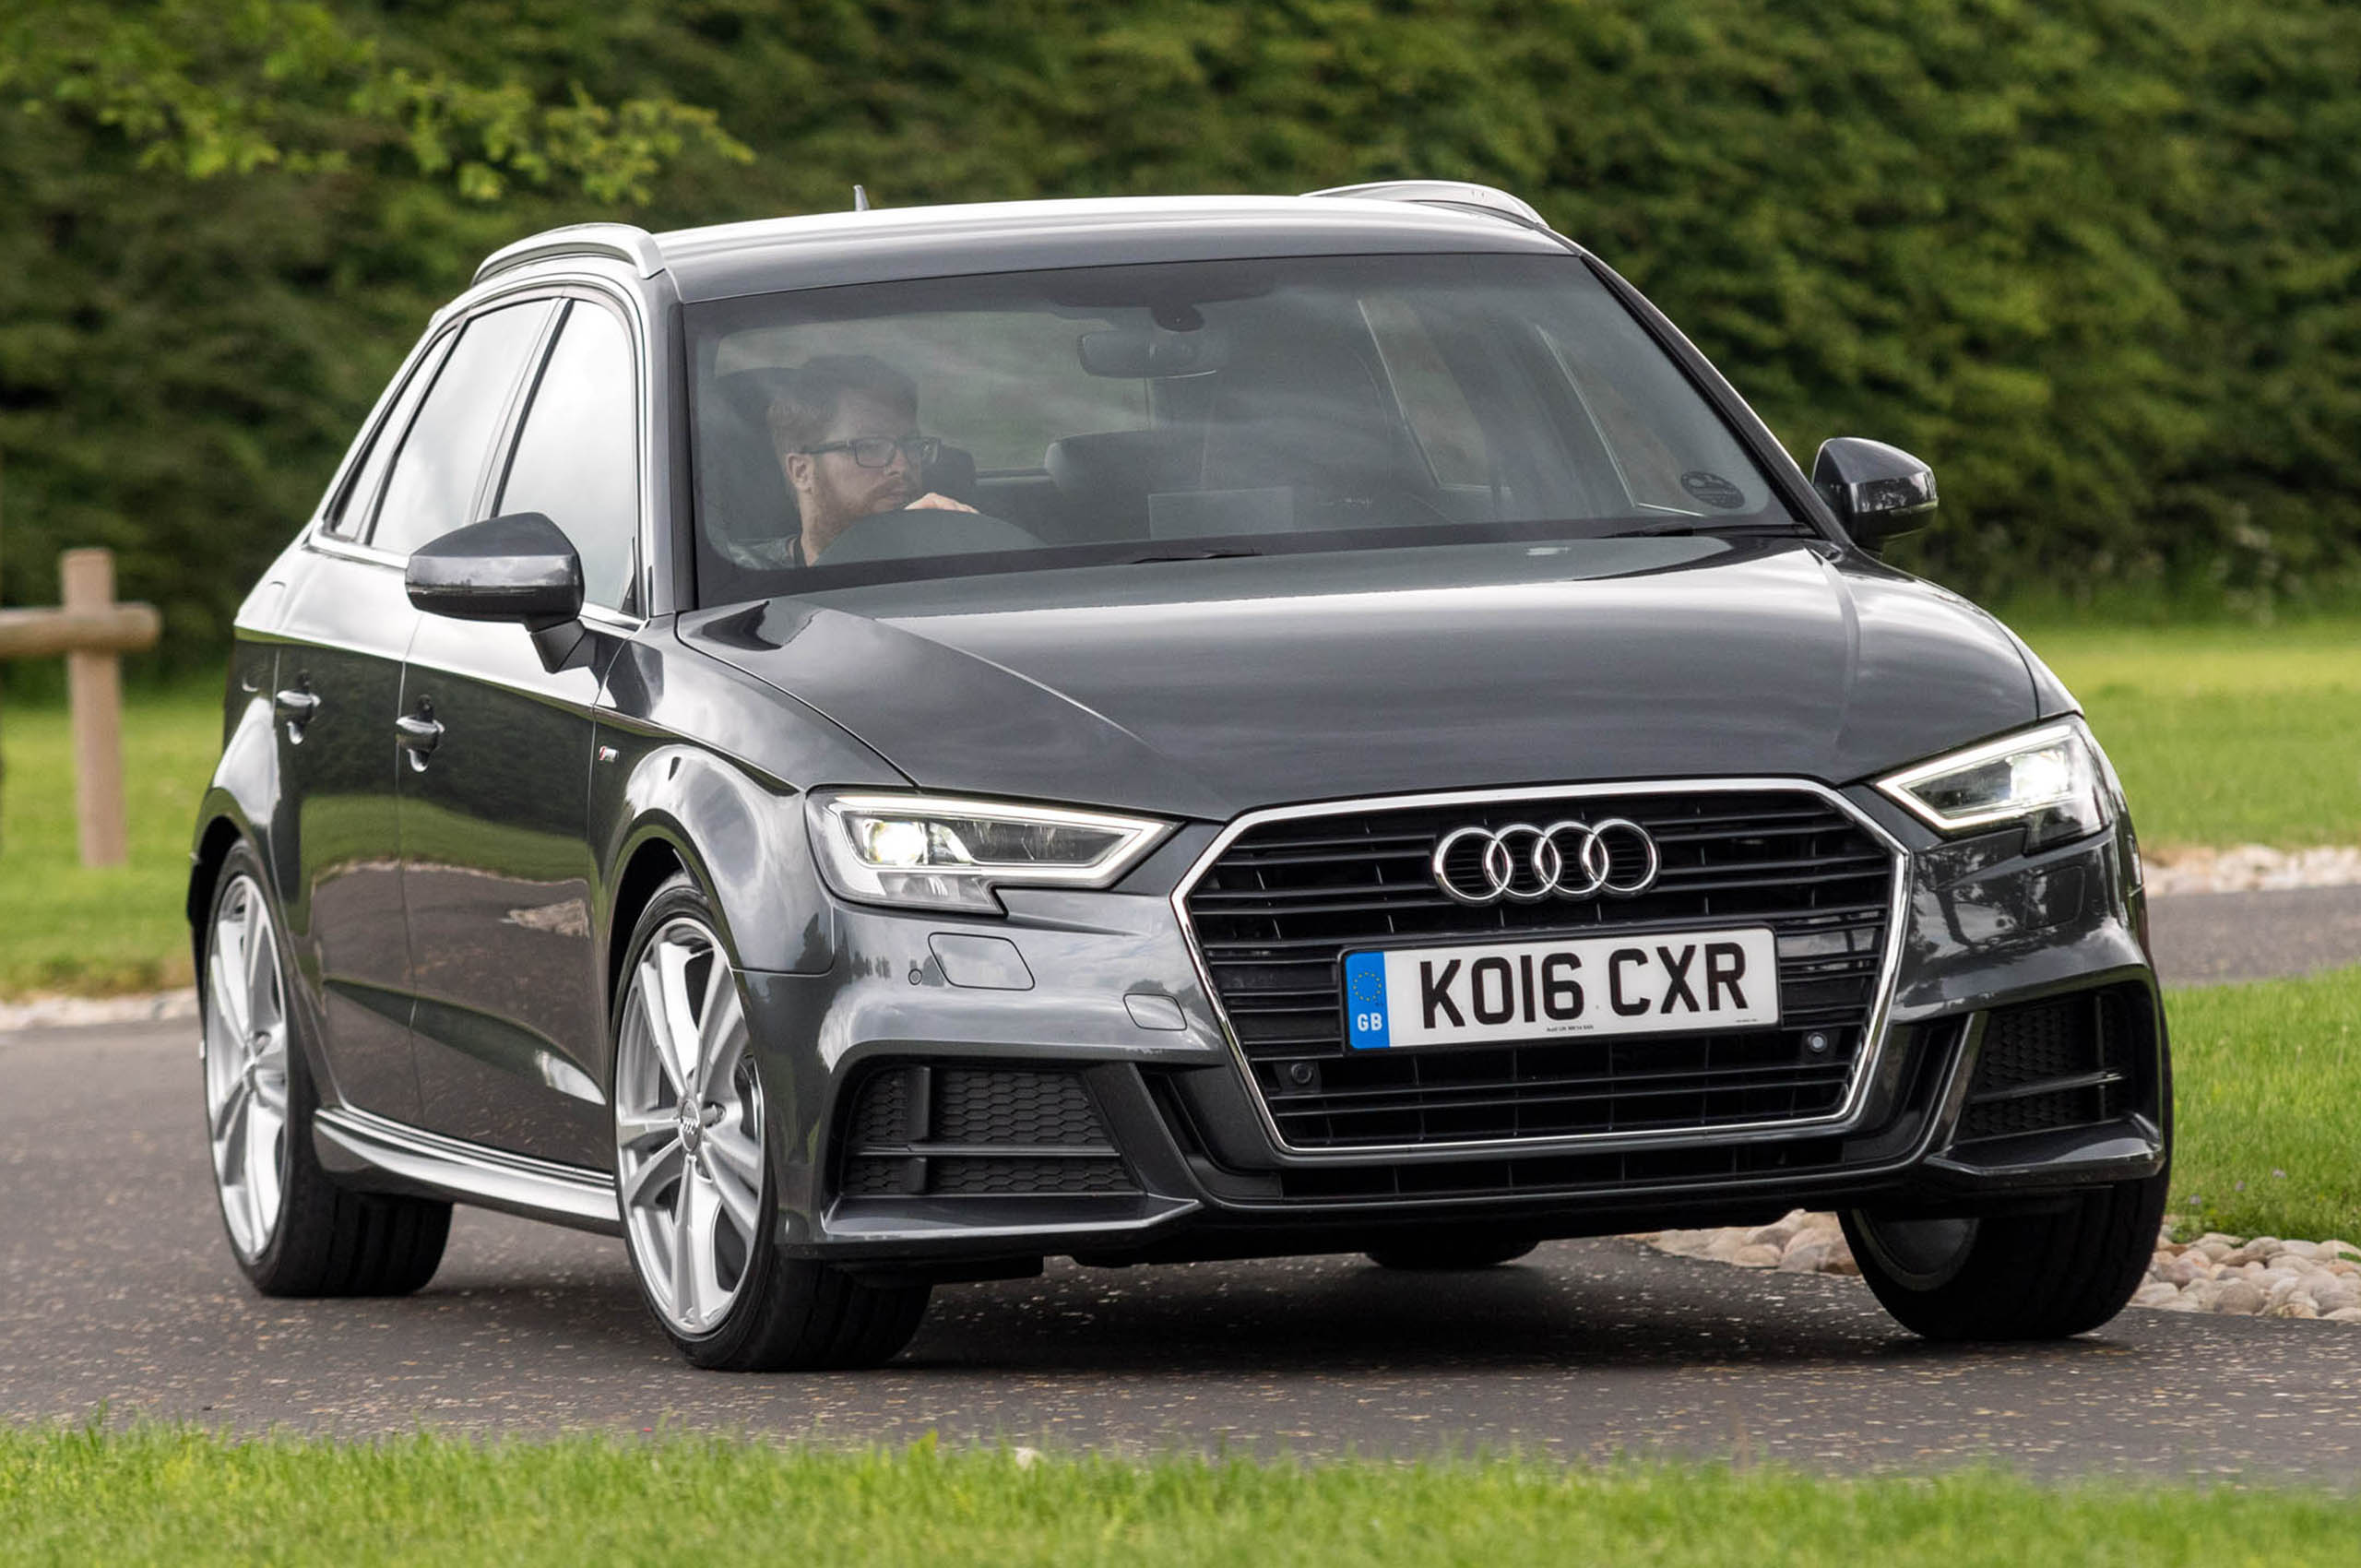 facelift the new audi a3 2016 facelift still ahead of the curve page 58 audi. Black Bedroom Furniture Sets. Home Design Ideas